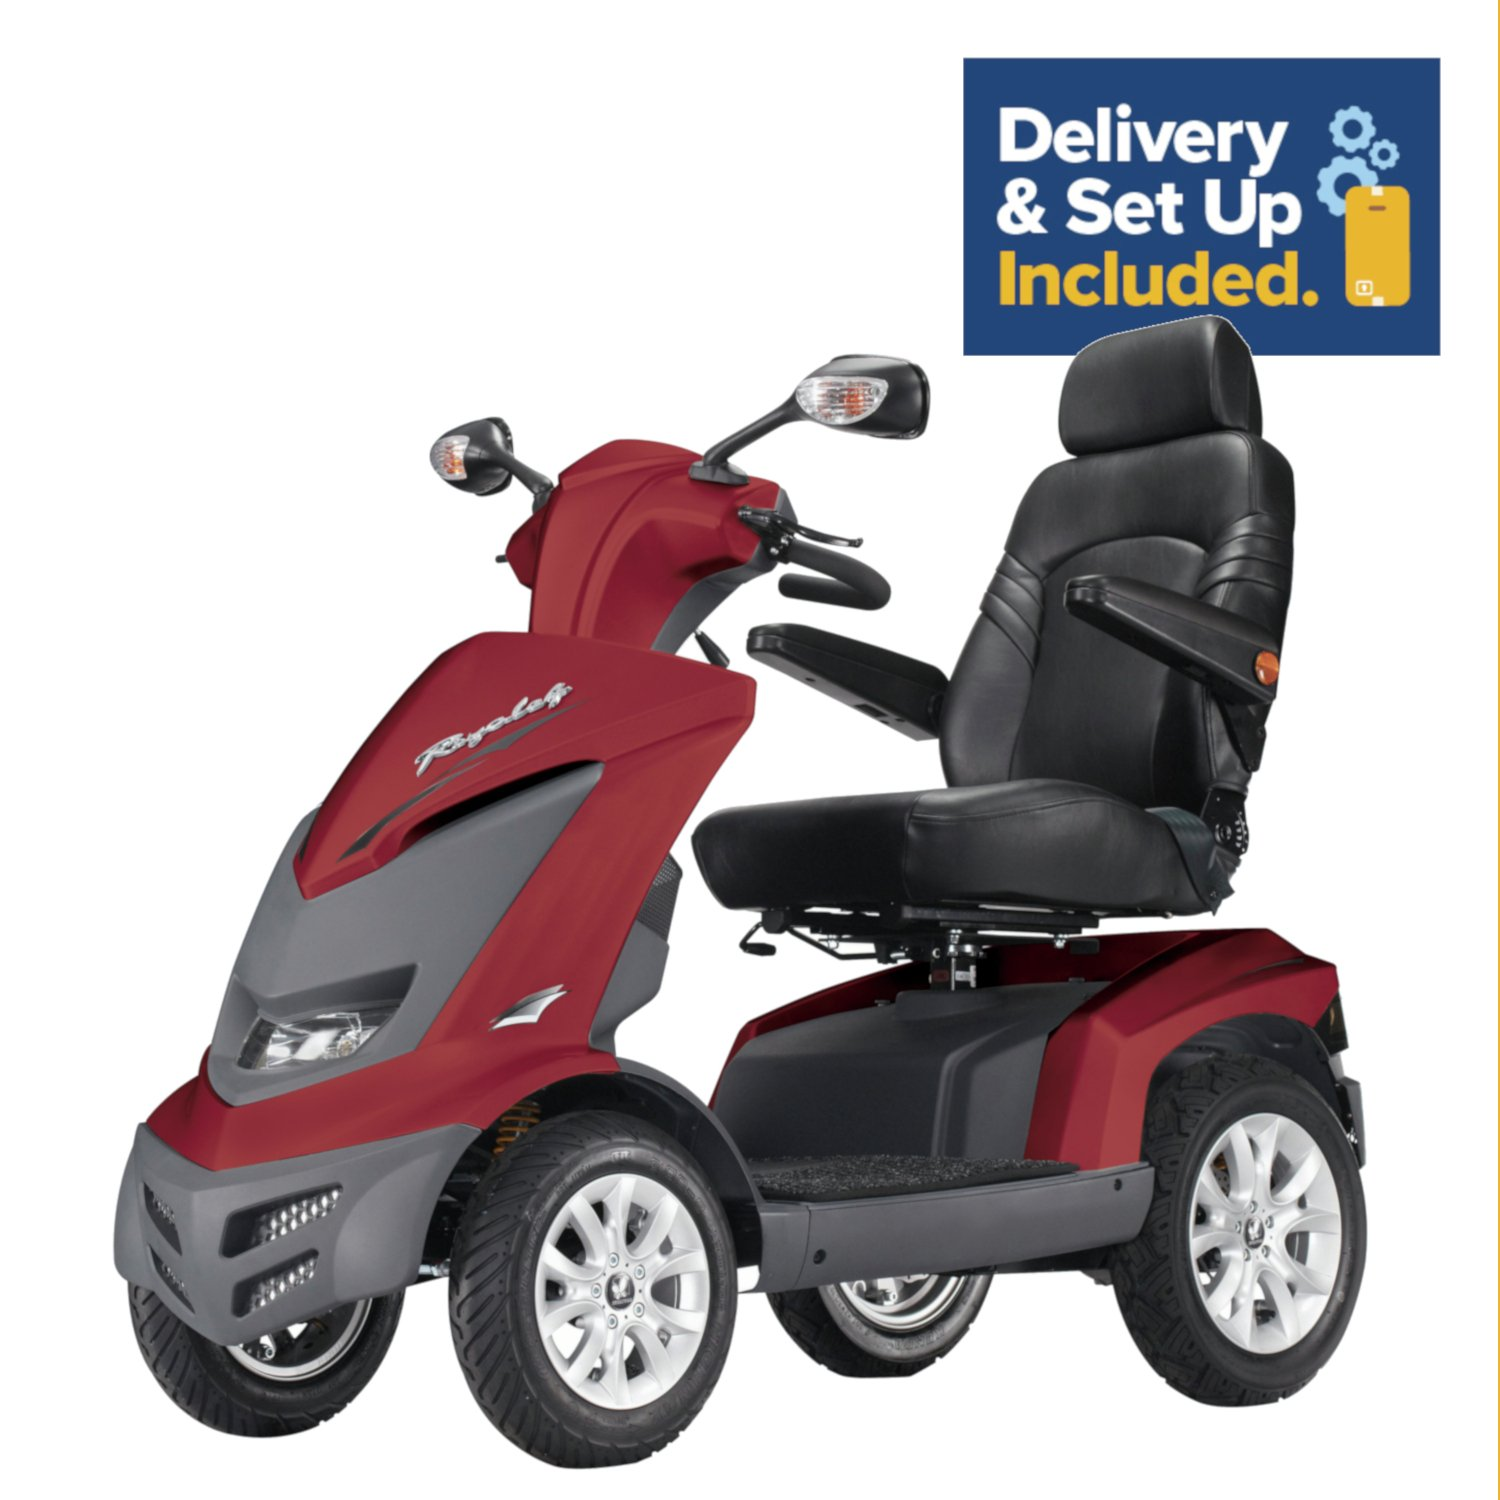 Royale Mobility Scooter Class 3 - Red